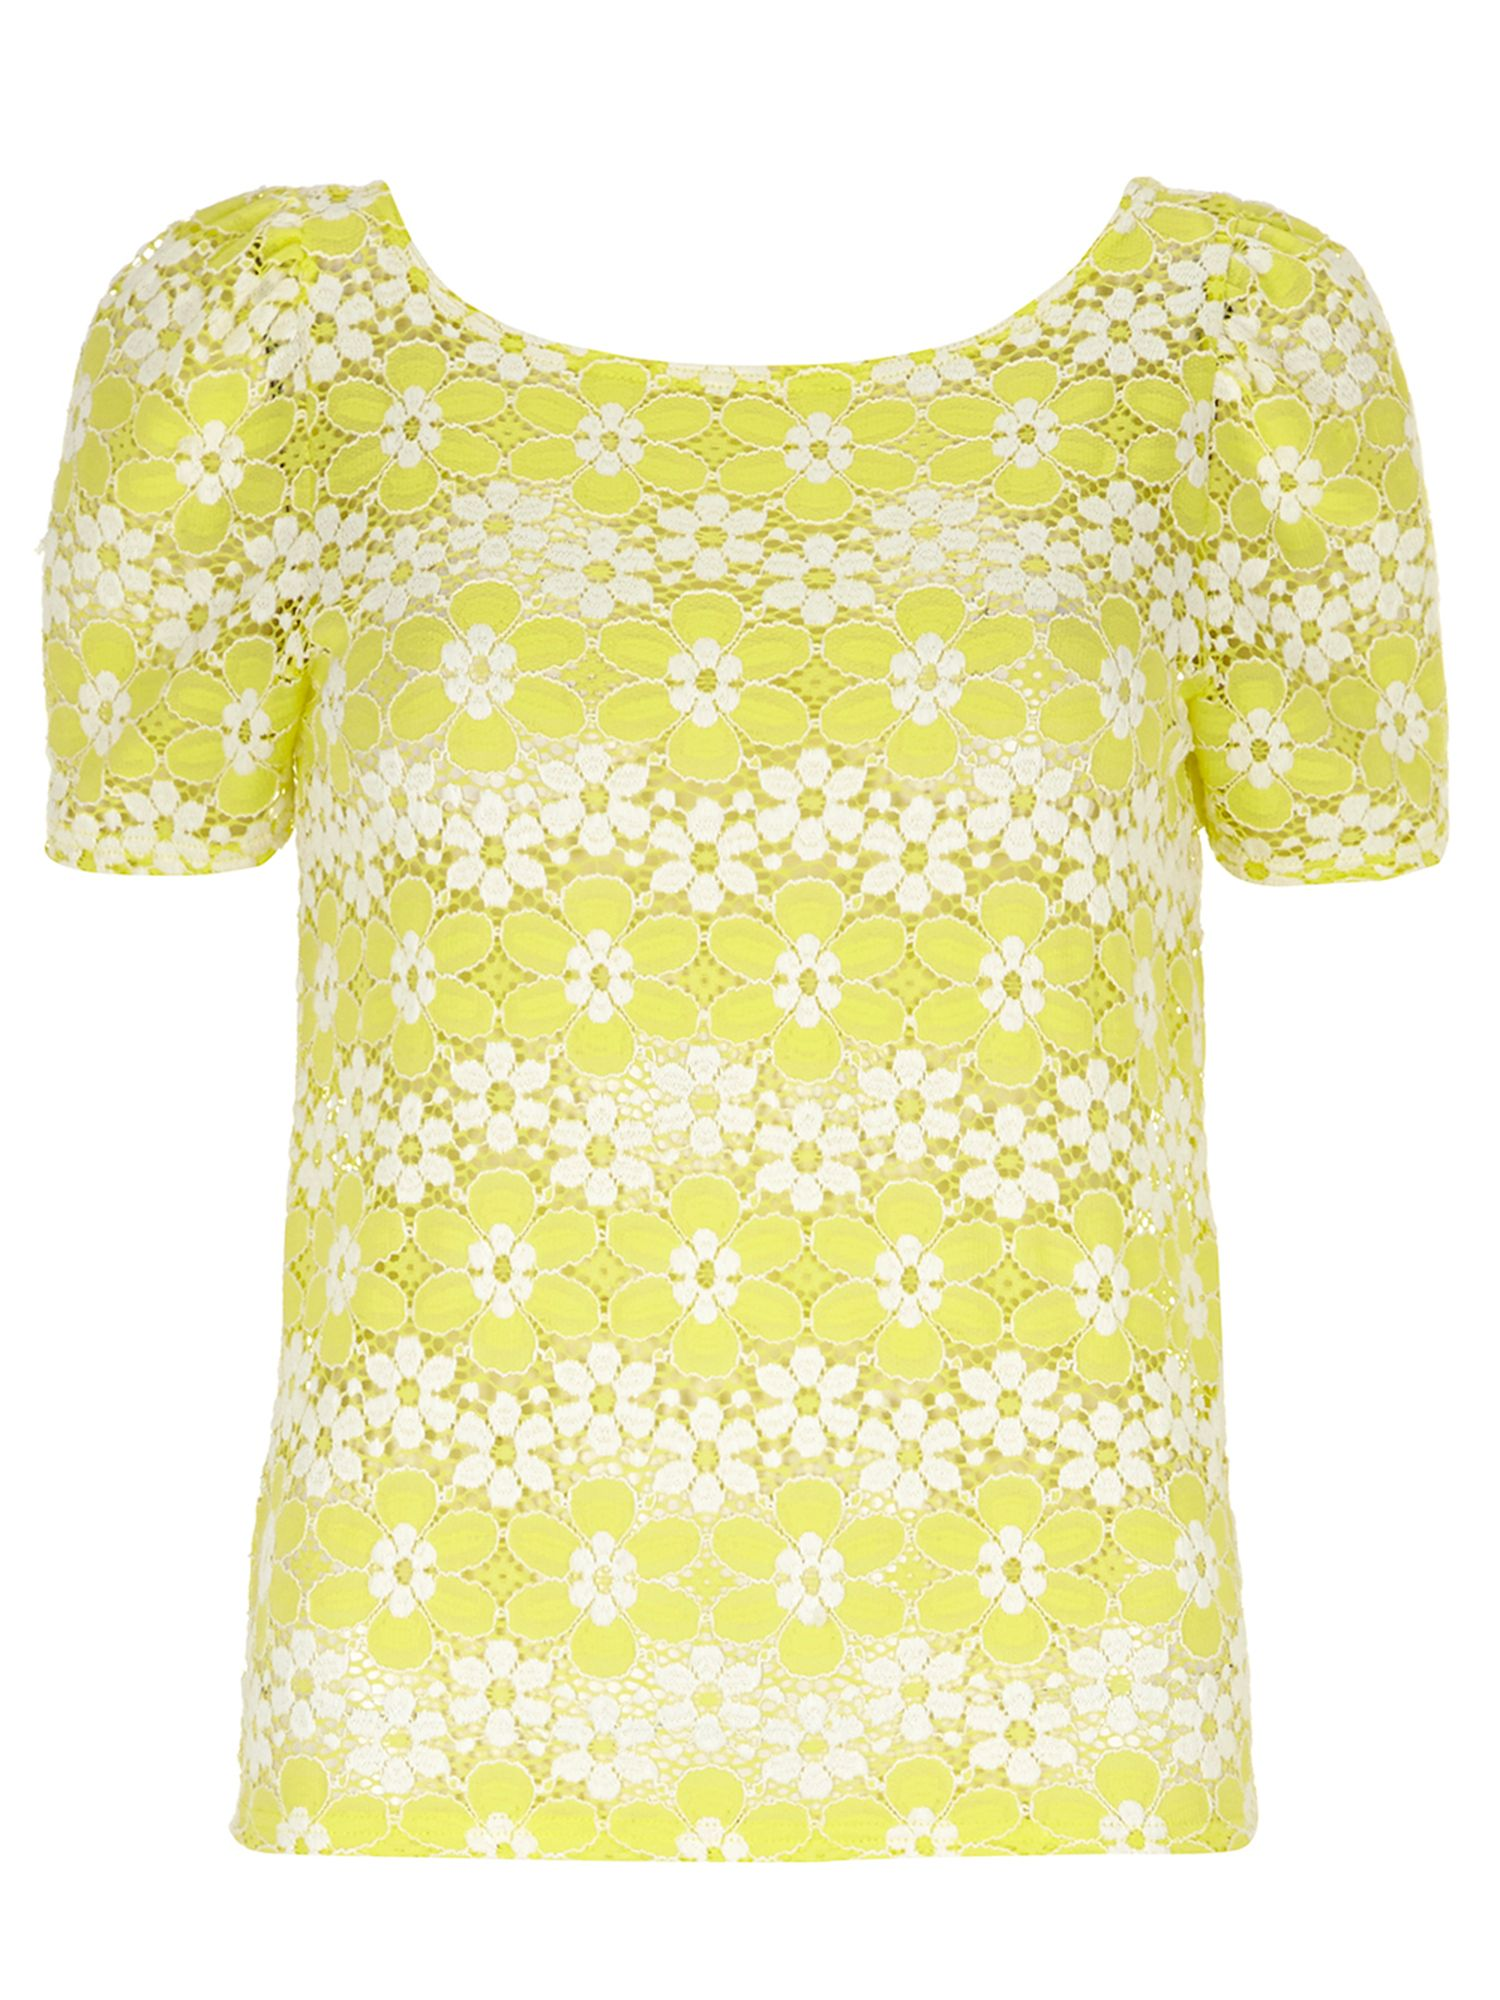 Daisy lace t-shirt